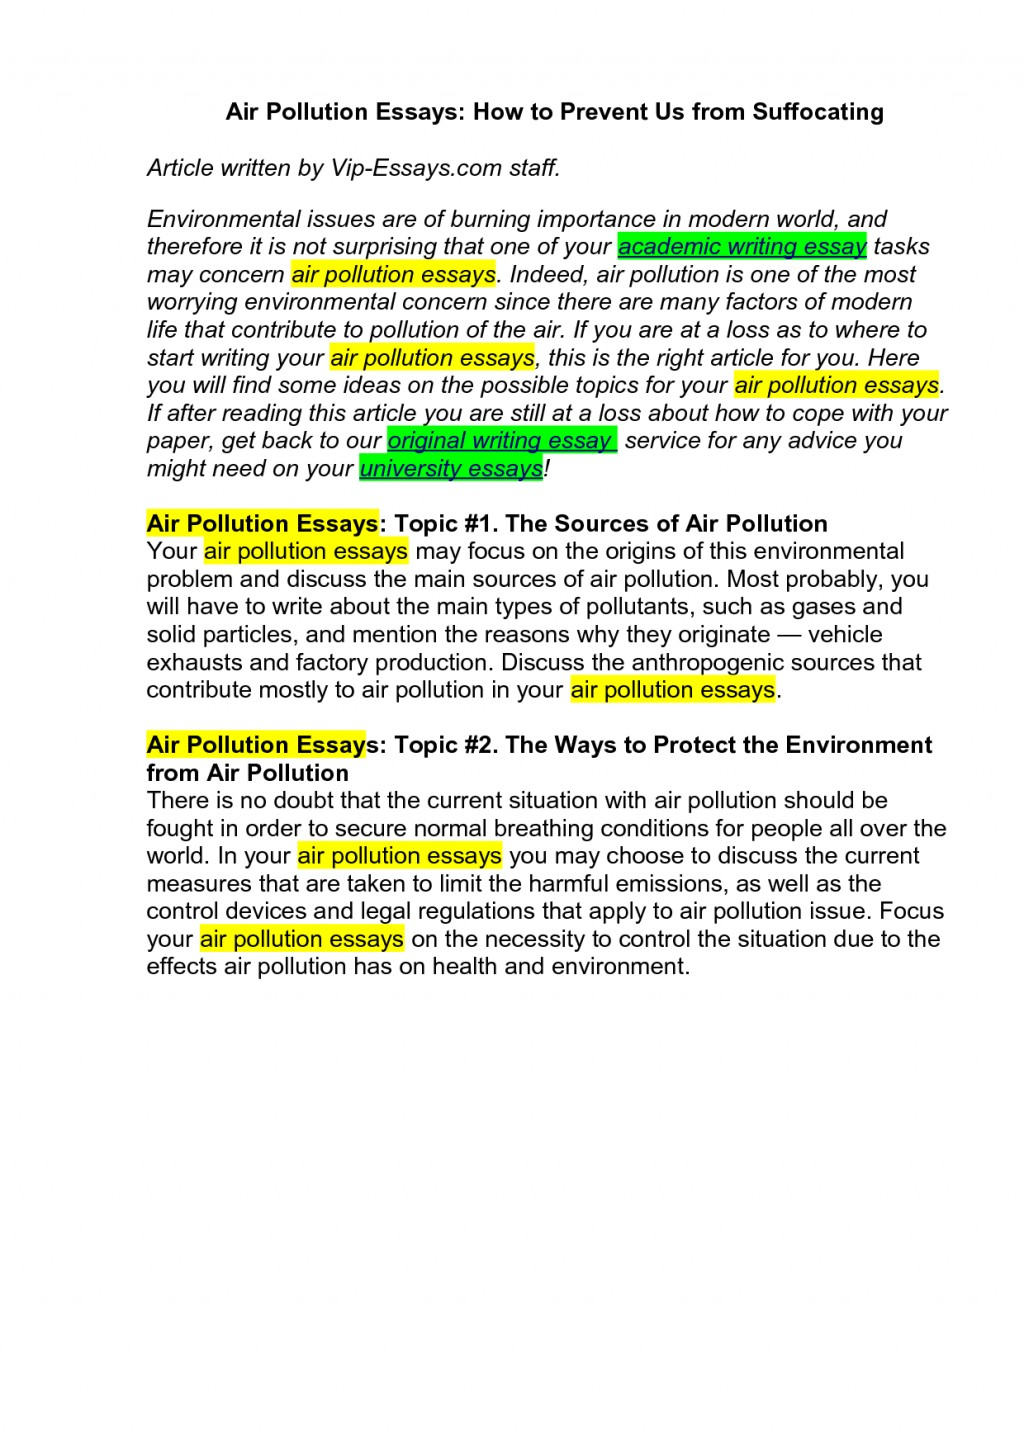 005 1558972385 How To Stop Air Pollution Essay Sensational Outline Thesis Statement Large